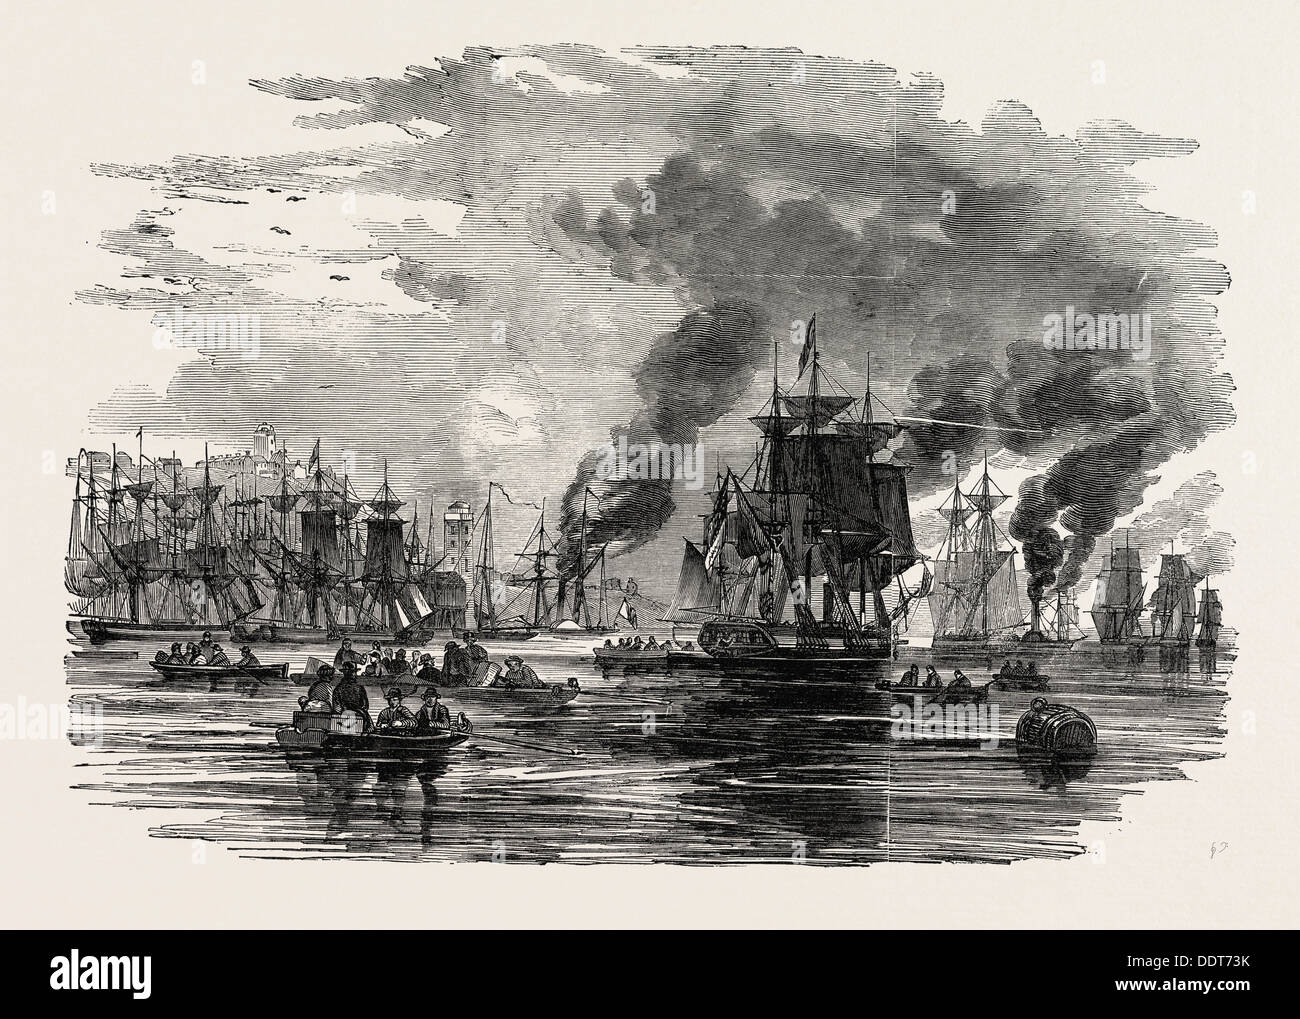 COLLIERS LEAVING THE HARBOUR, NORTH SHIELDS, AFTER THE BREAKING UP OF THE STRIKE, UK, 1851 engraving - Stock Image